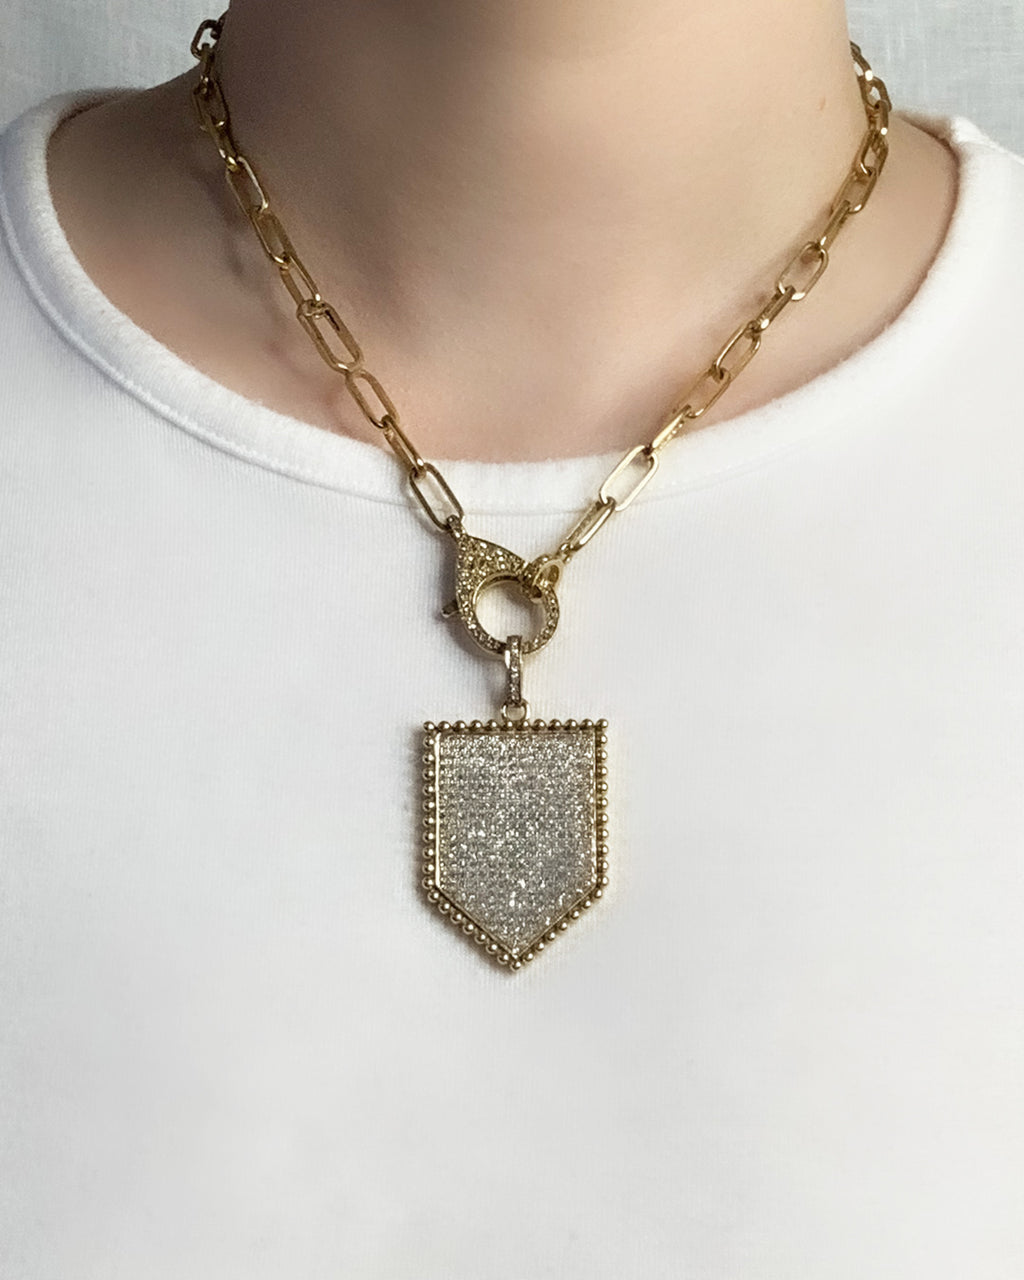 Brass Pave Diamond Shield Pendant - Medium